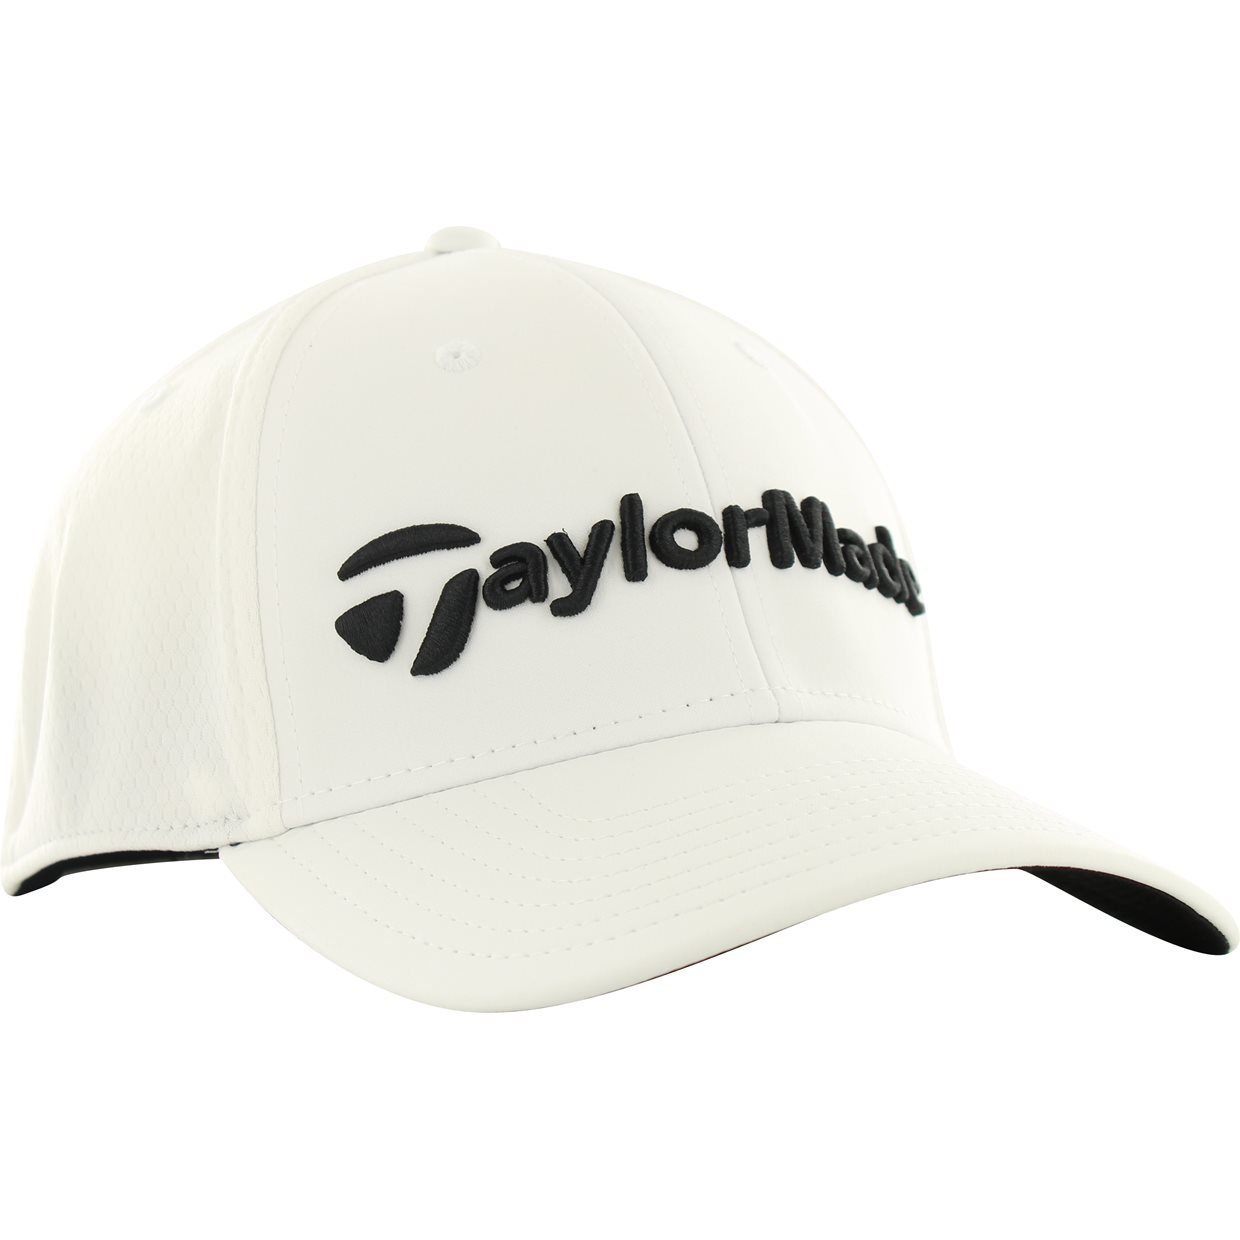 59c554dac77c5 TaylorMade Performance Cage 2019 Headwear Apparel at GlobalGolf.com